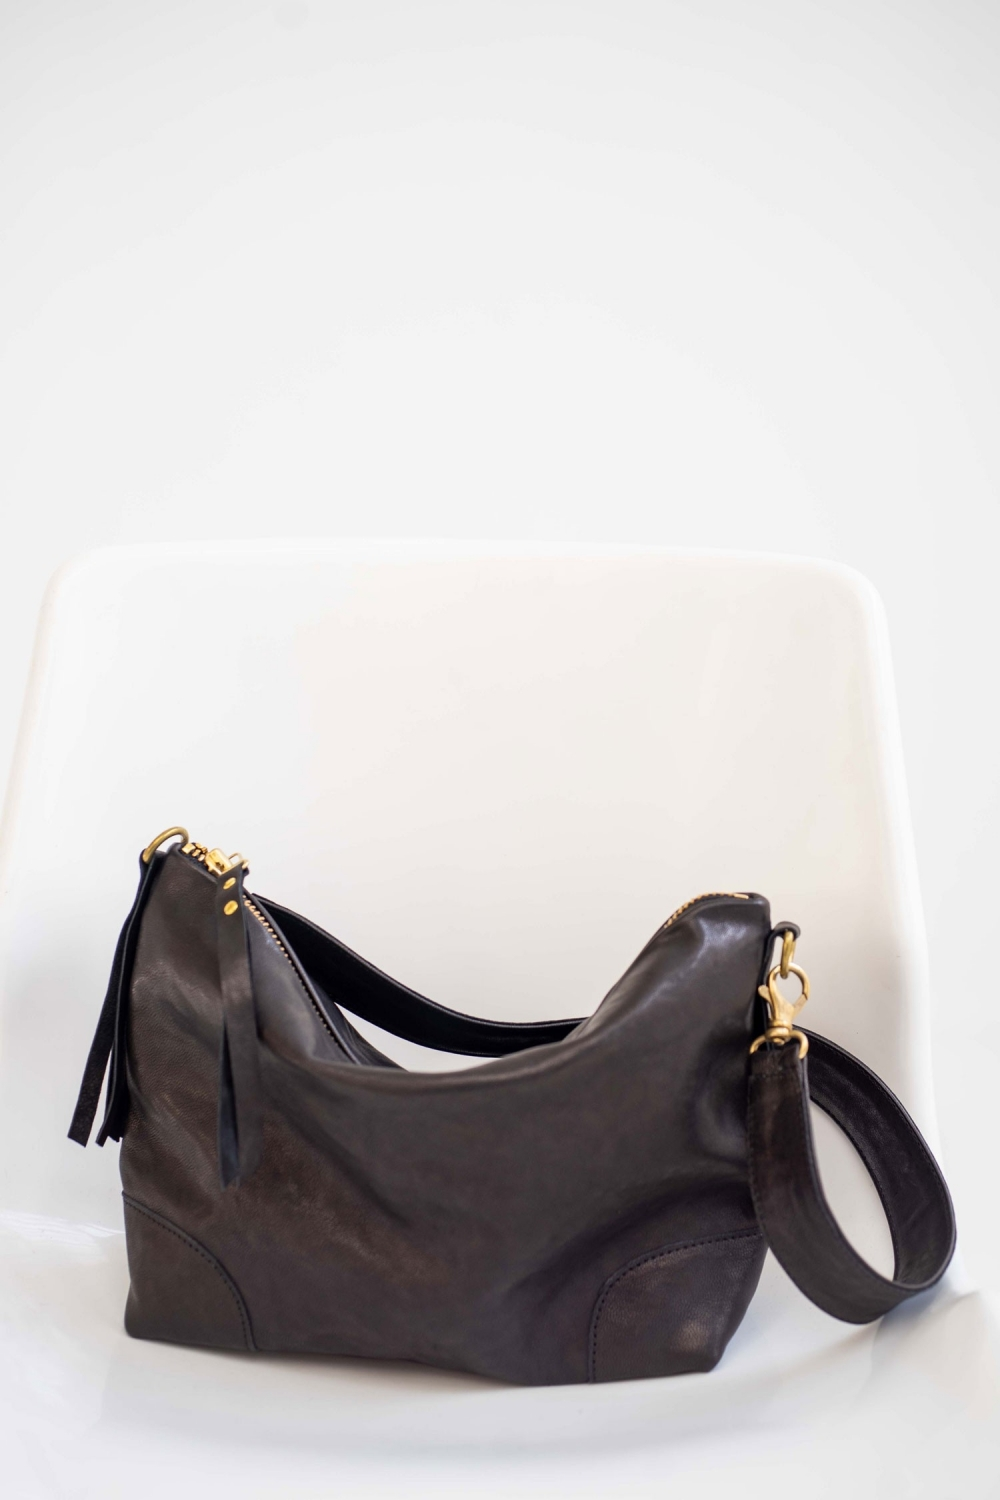 SILVIA'S BAG IN BLACK